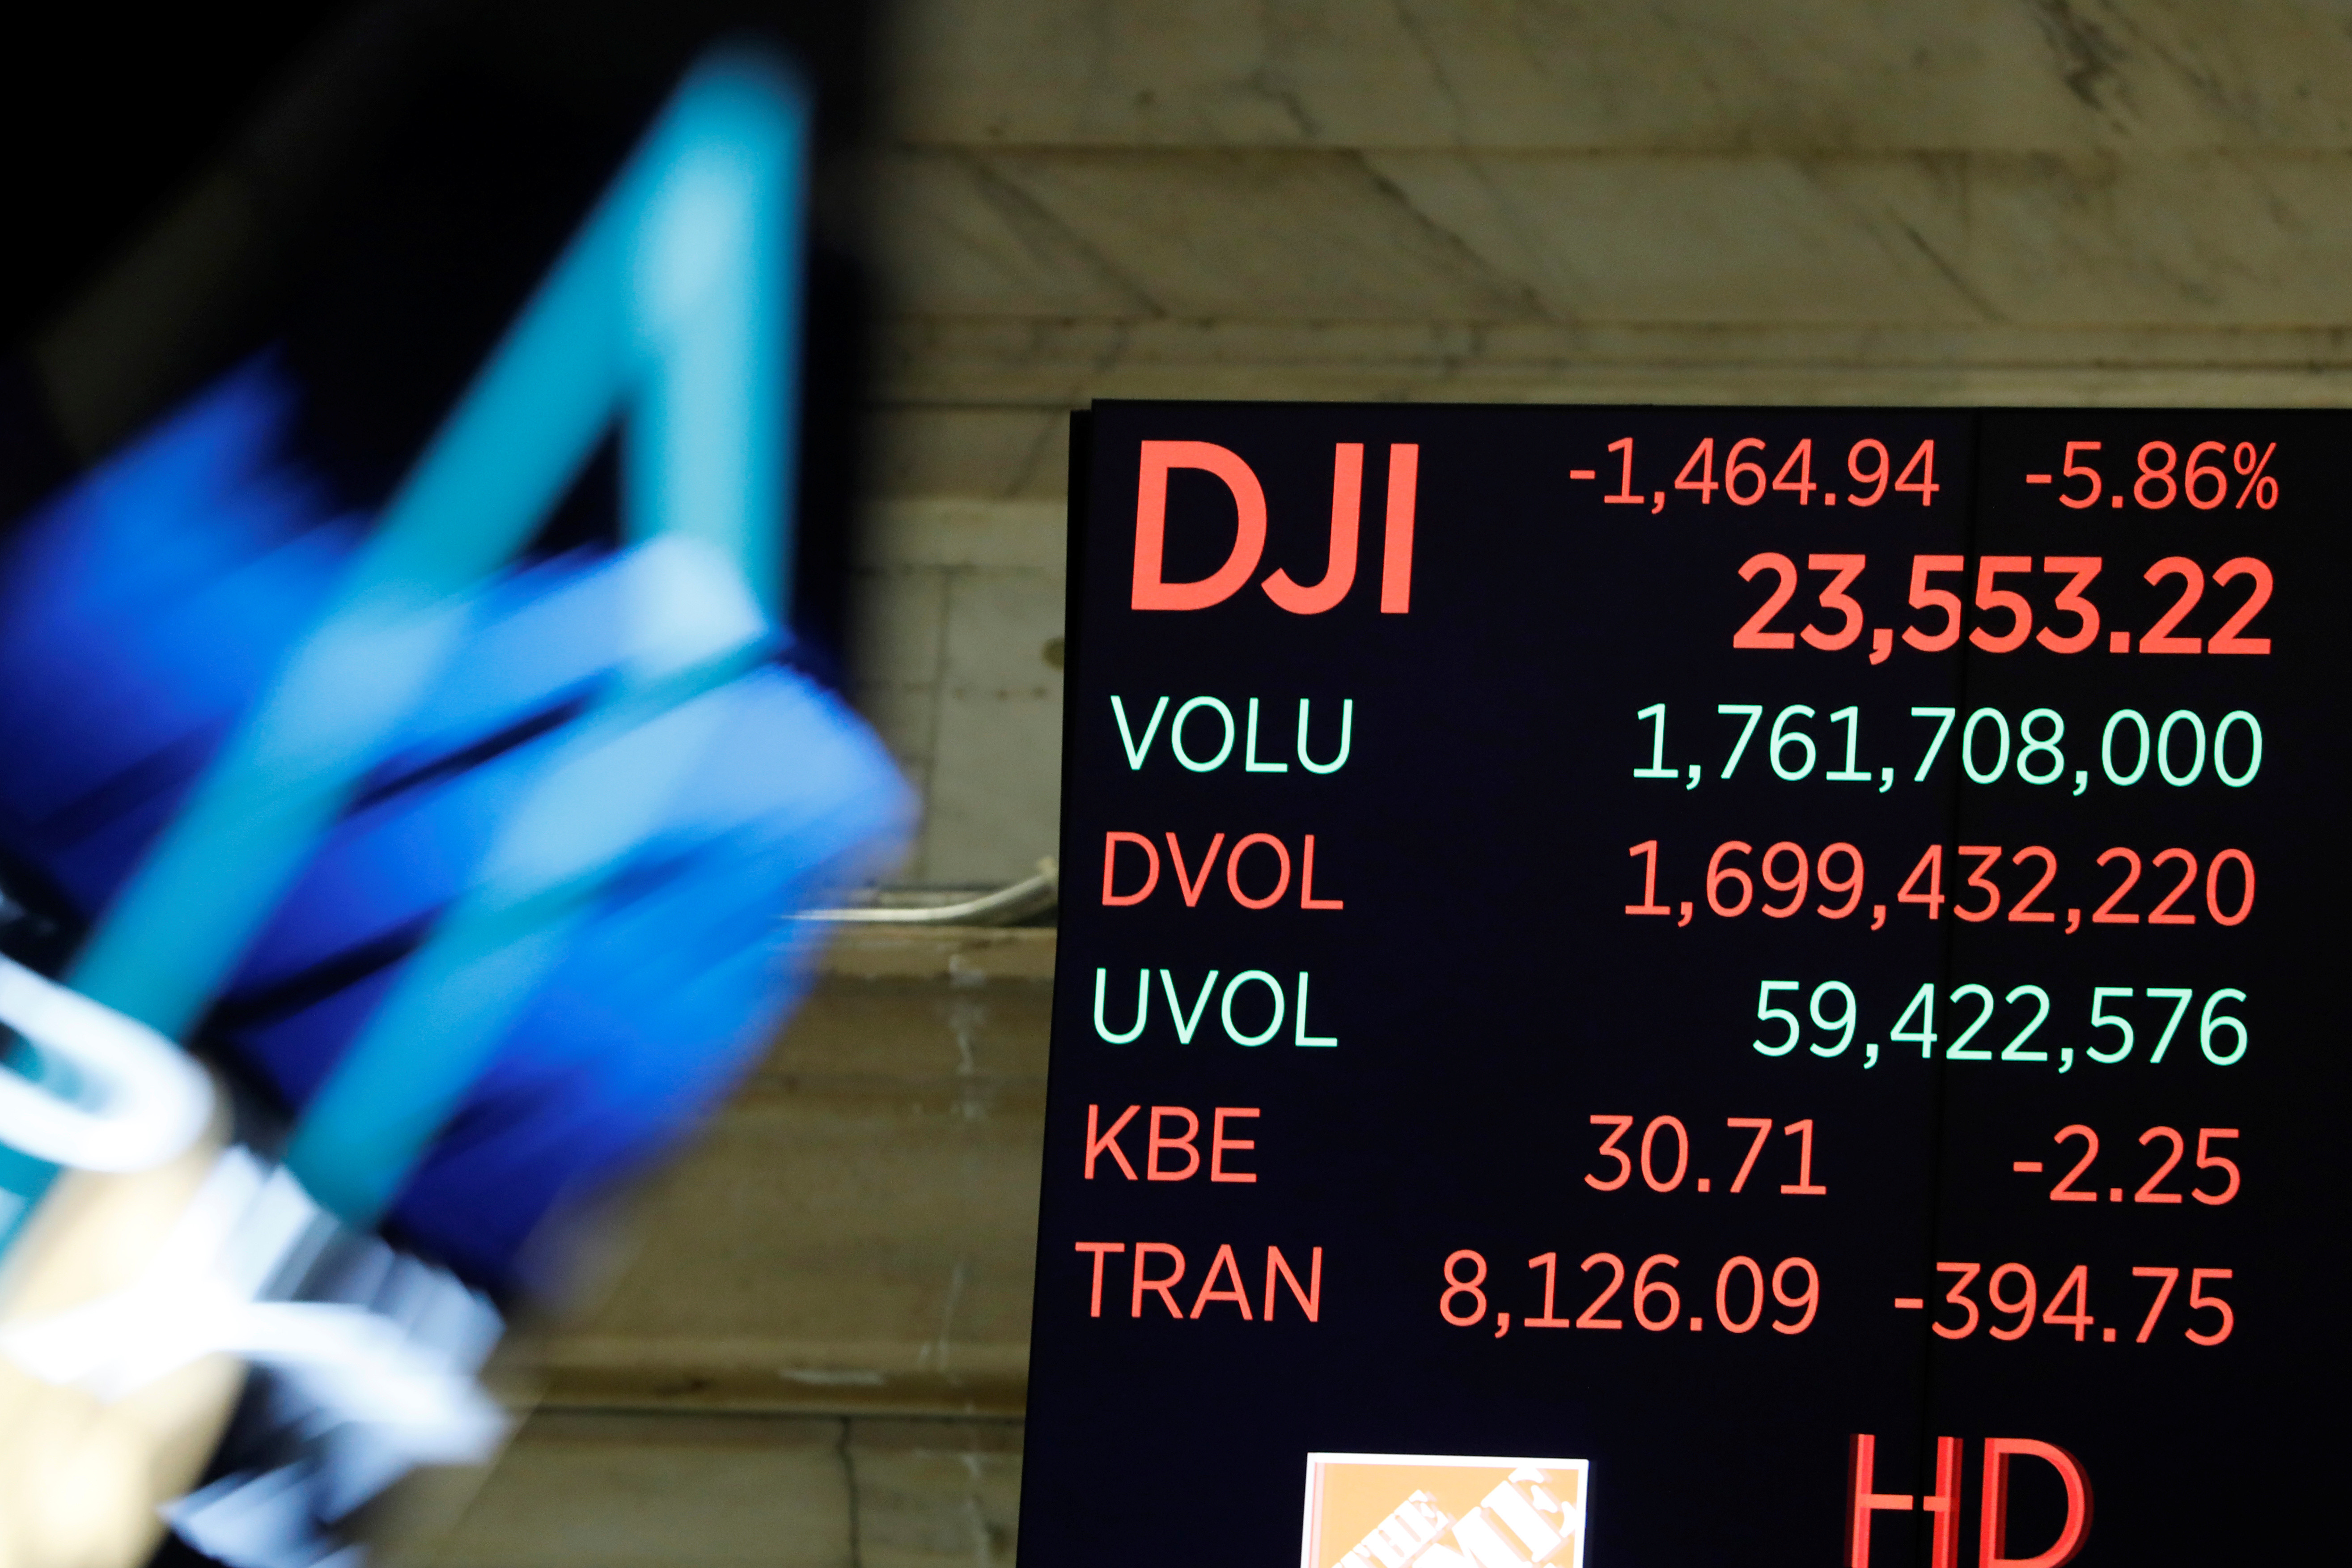 The Dow Jones Industrial Average is displayed after the closing bell on the floor of the New York Stock Exchange (NYSE) in New York City, New York, U.S., March 11, 2020. REUTERS/Andrew Kelly - RC2WHF9HGYQE